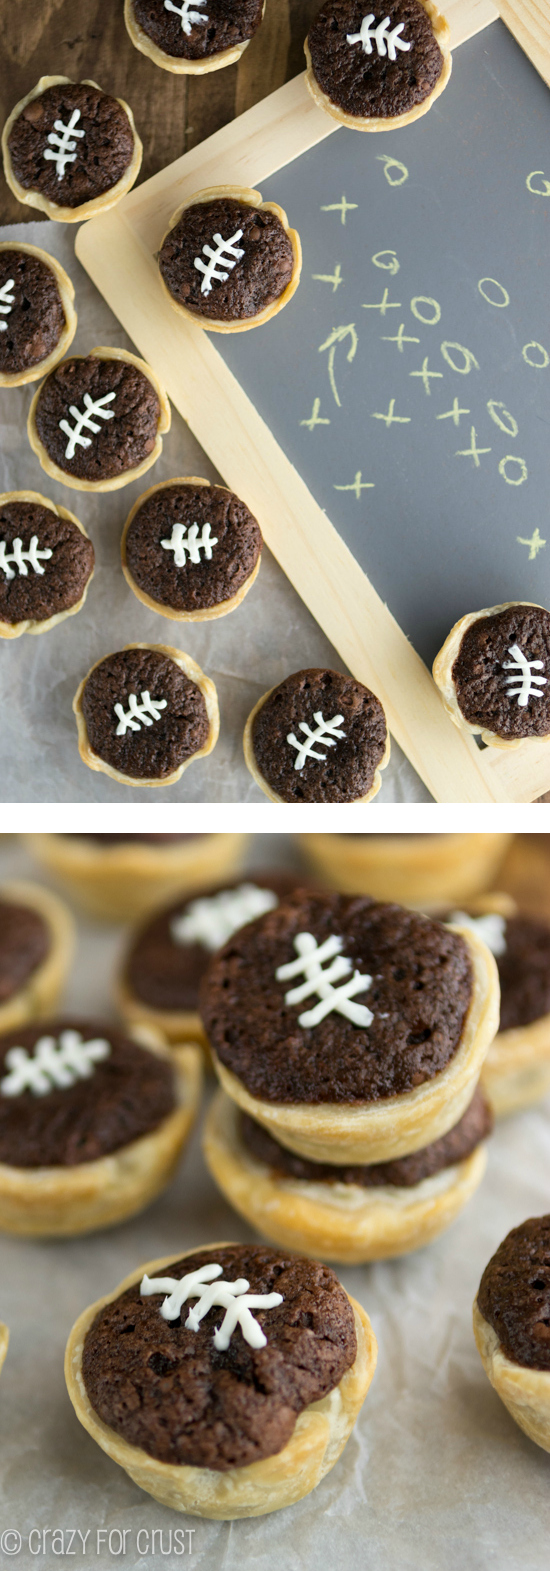 Football-pie-collage